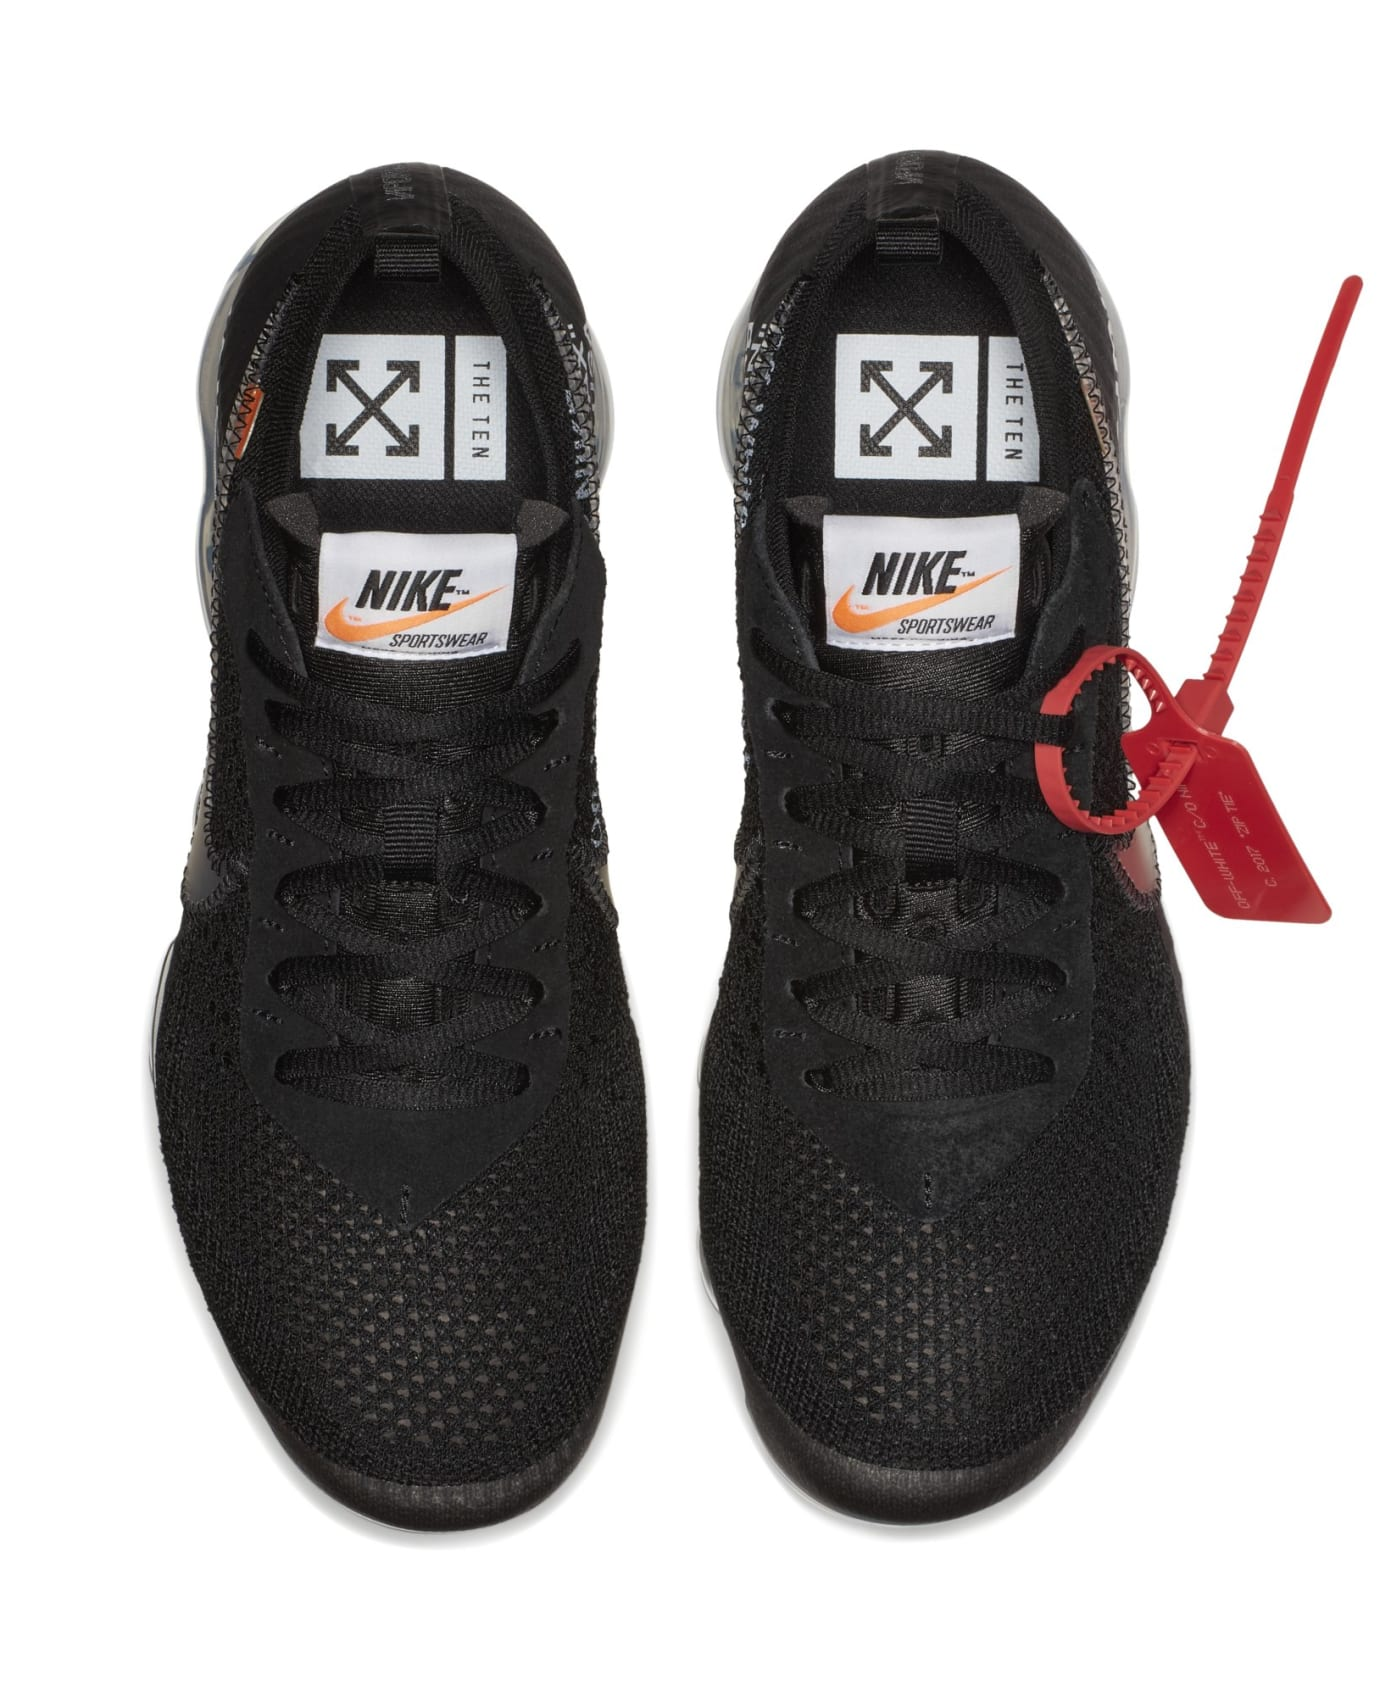 Off-White x Nike Air VaporMax 'Black' AA3831-002 (Top)